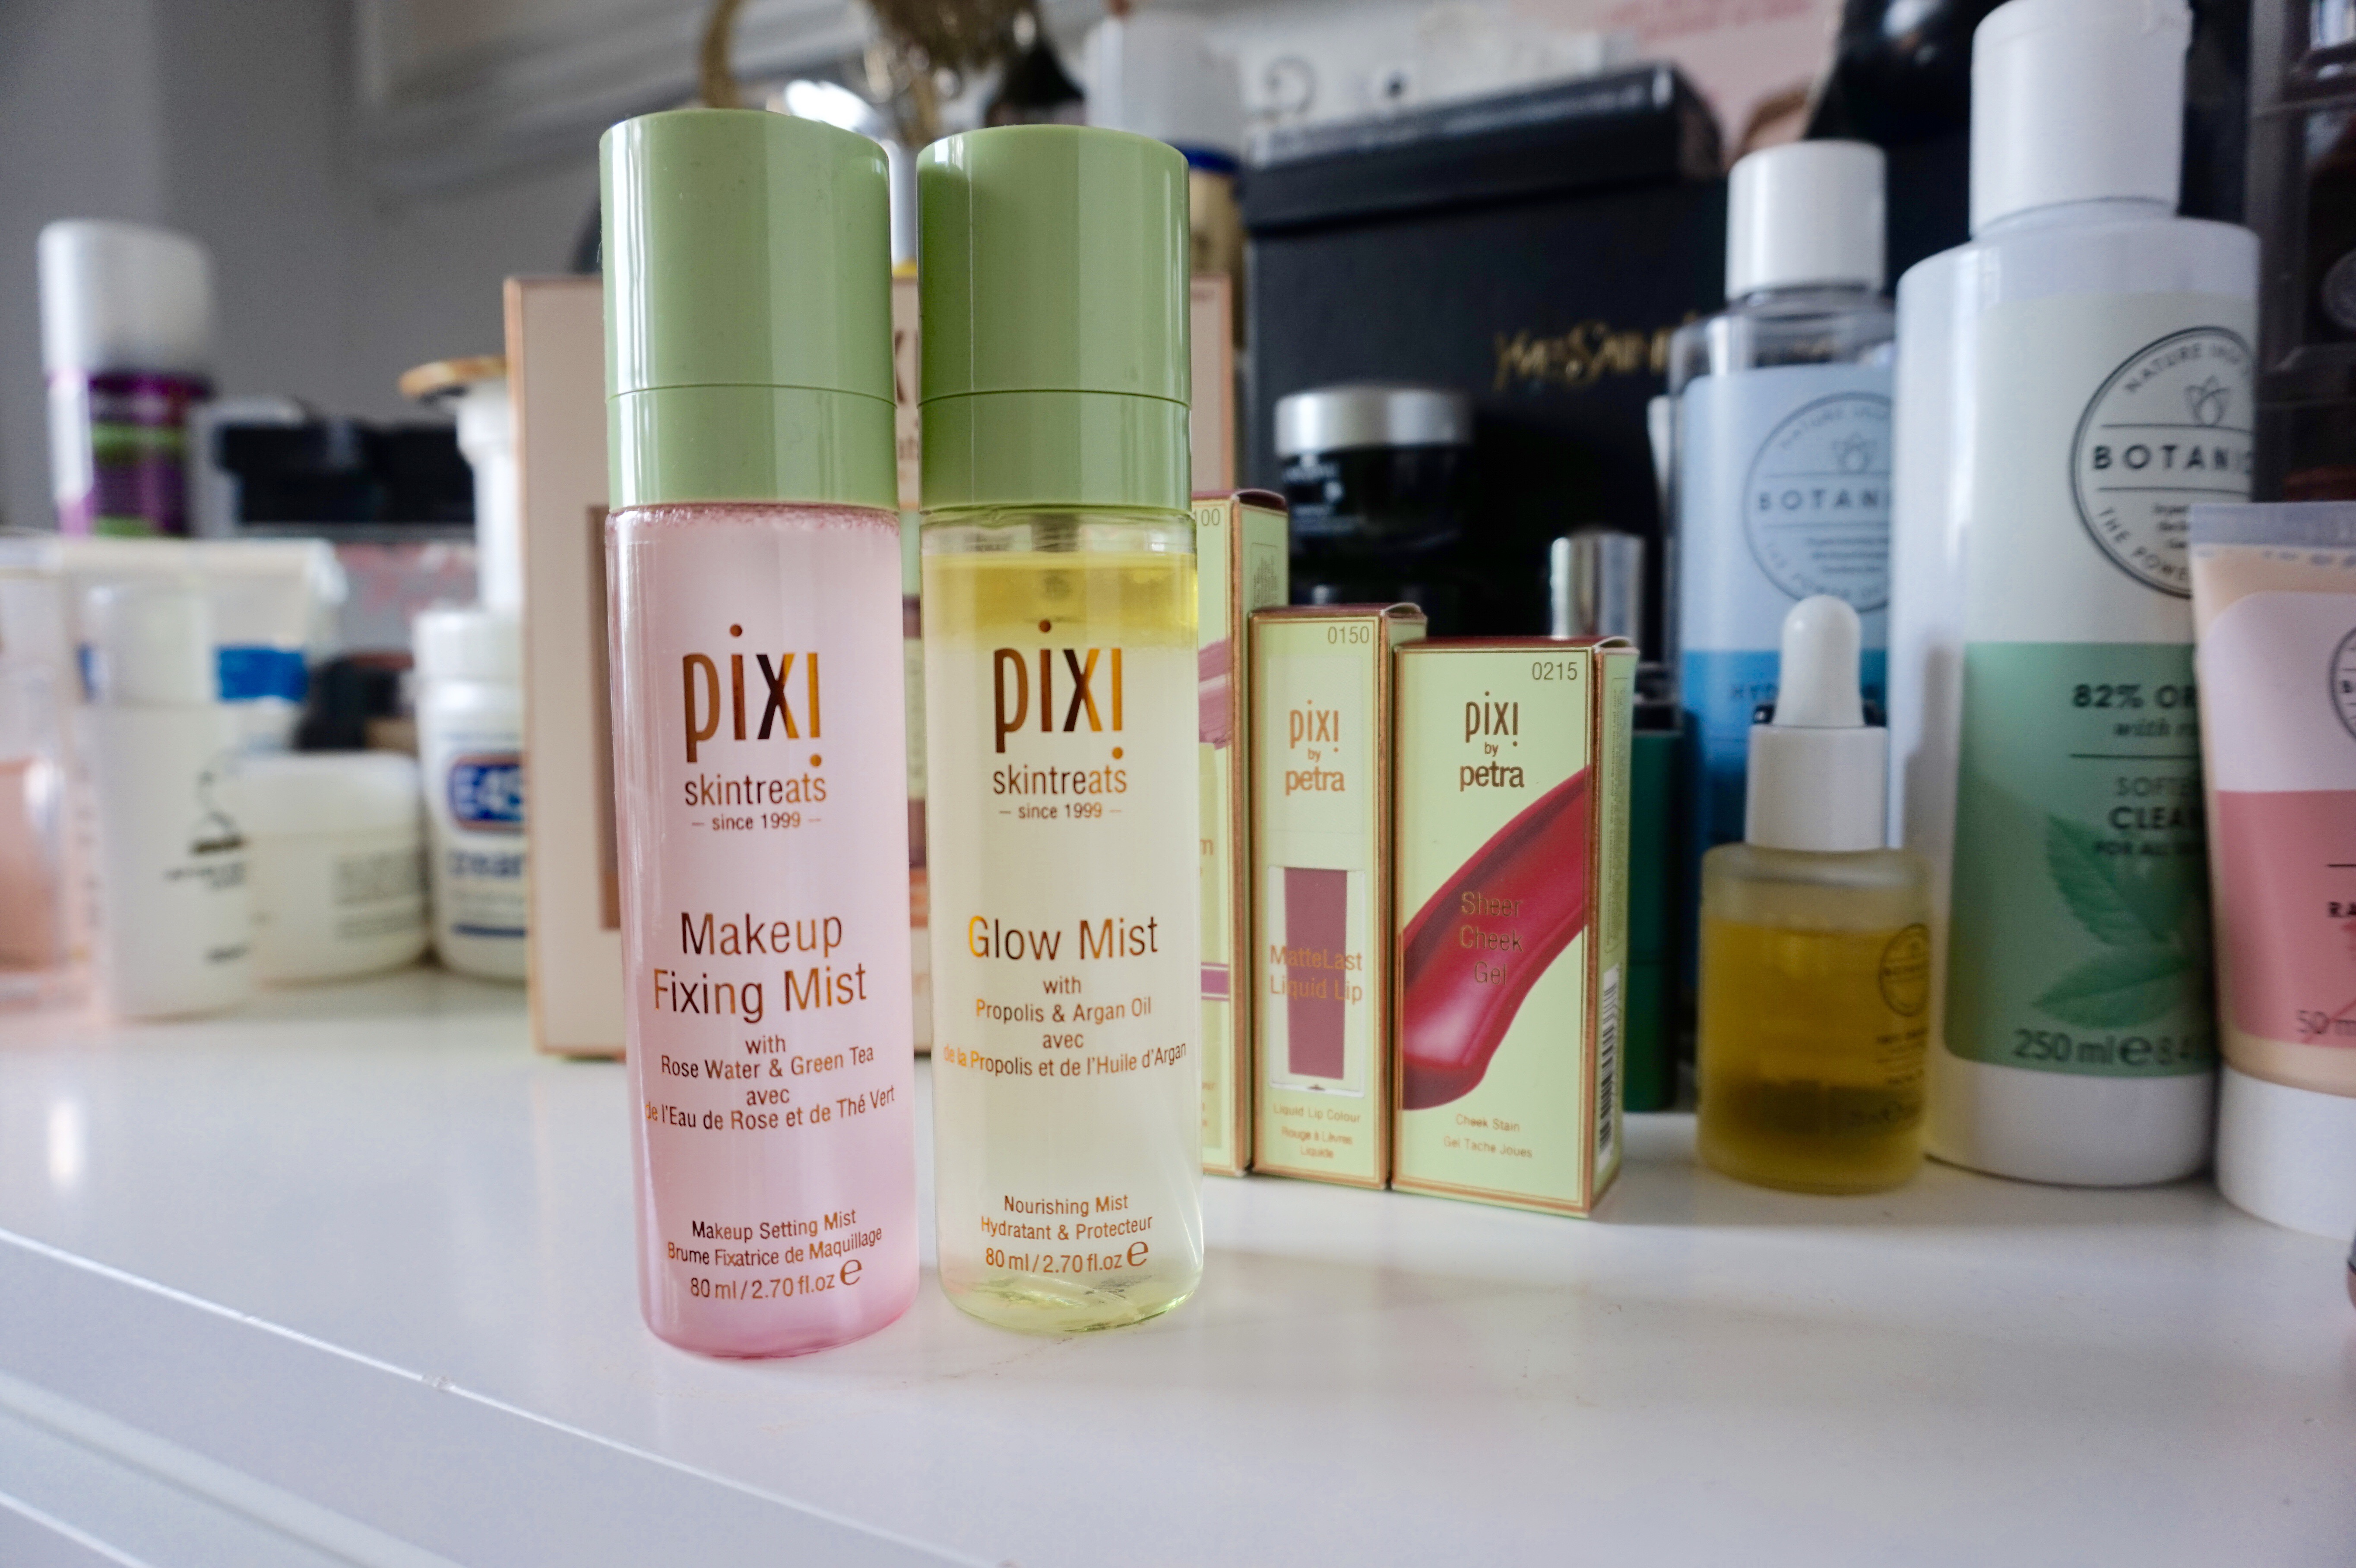 raychel-says-pixi-by-petra-makeup-fixing-mist-glow-mist